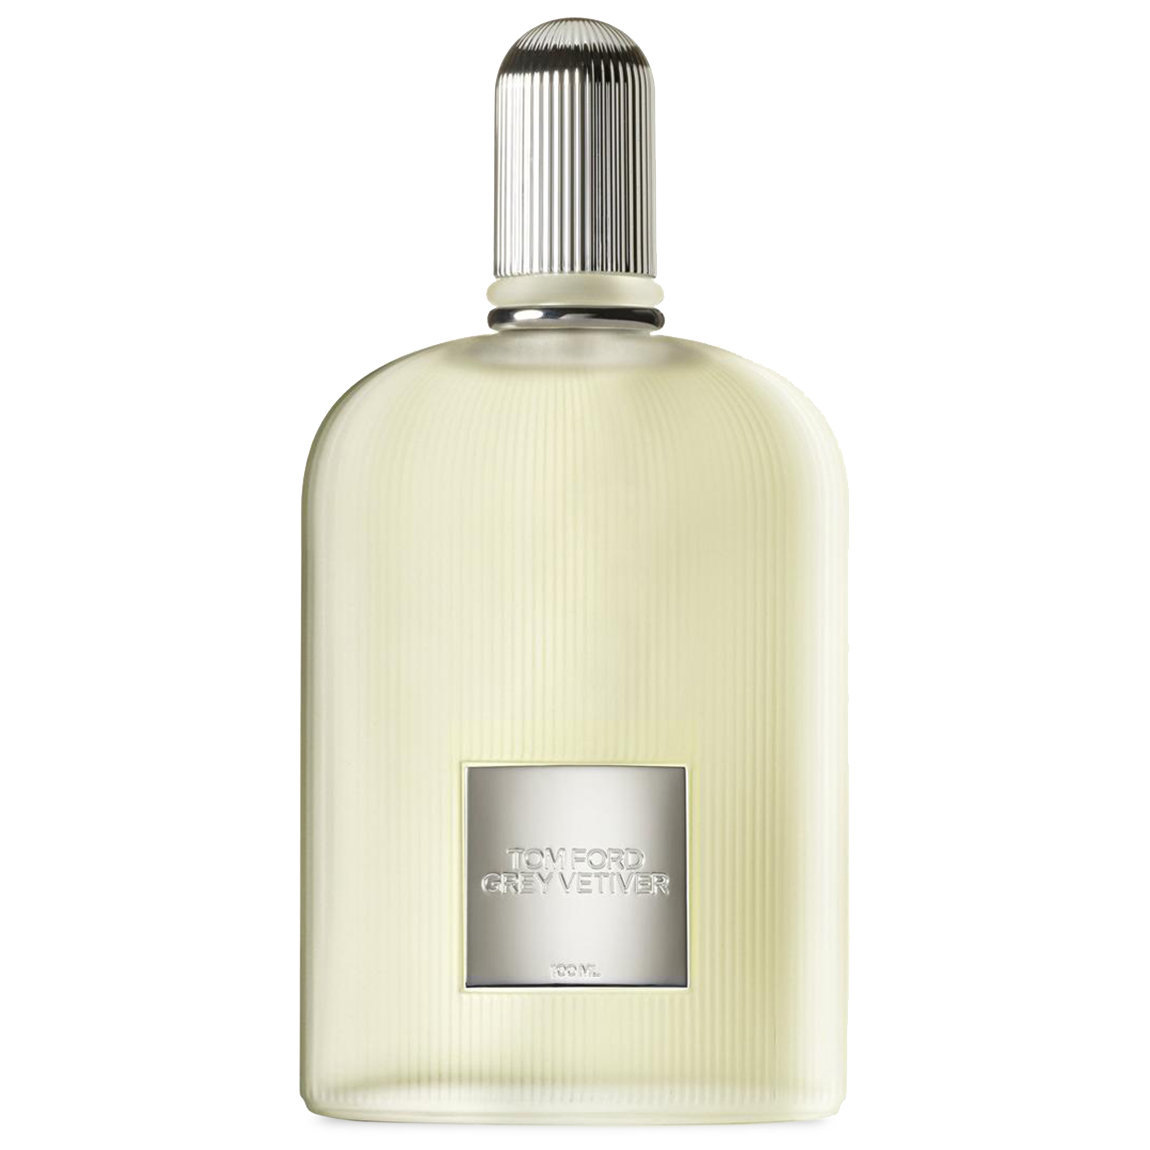 TOM FORD Grey Vetiver 100 ml alternative view 1 - product swatch.